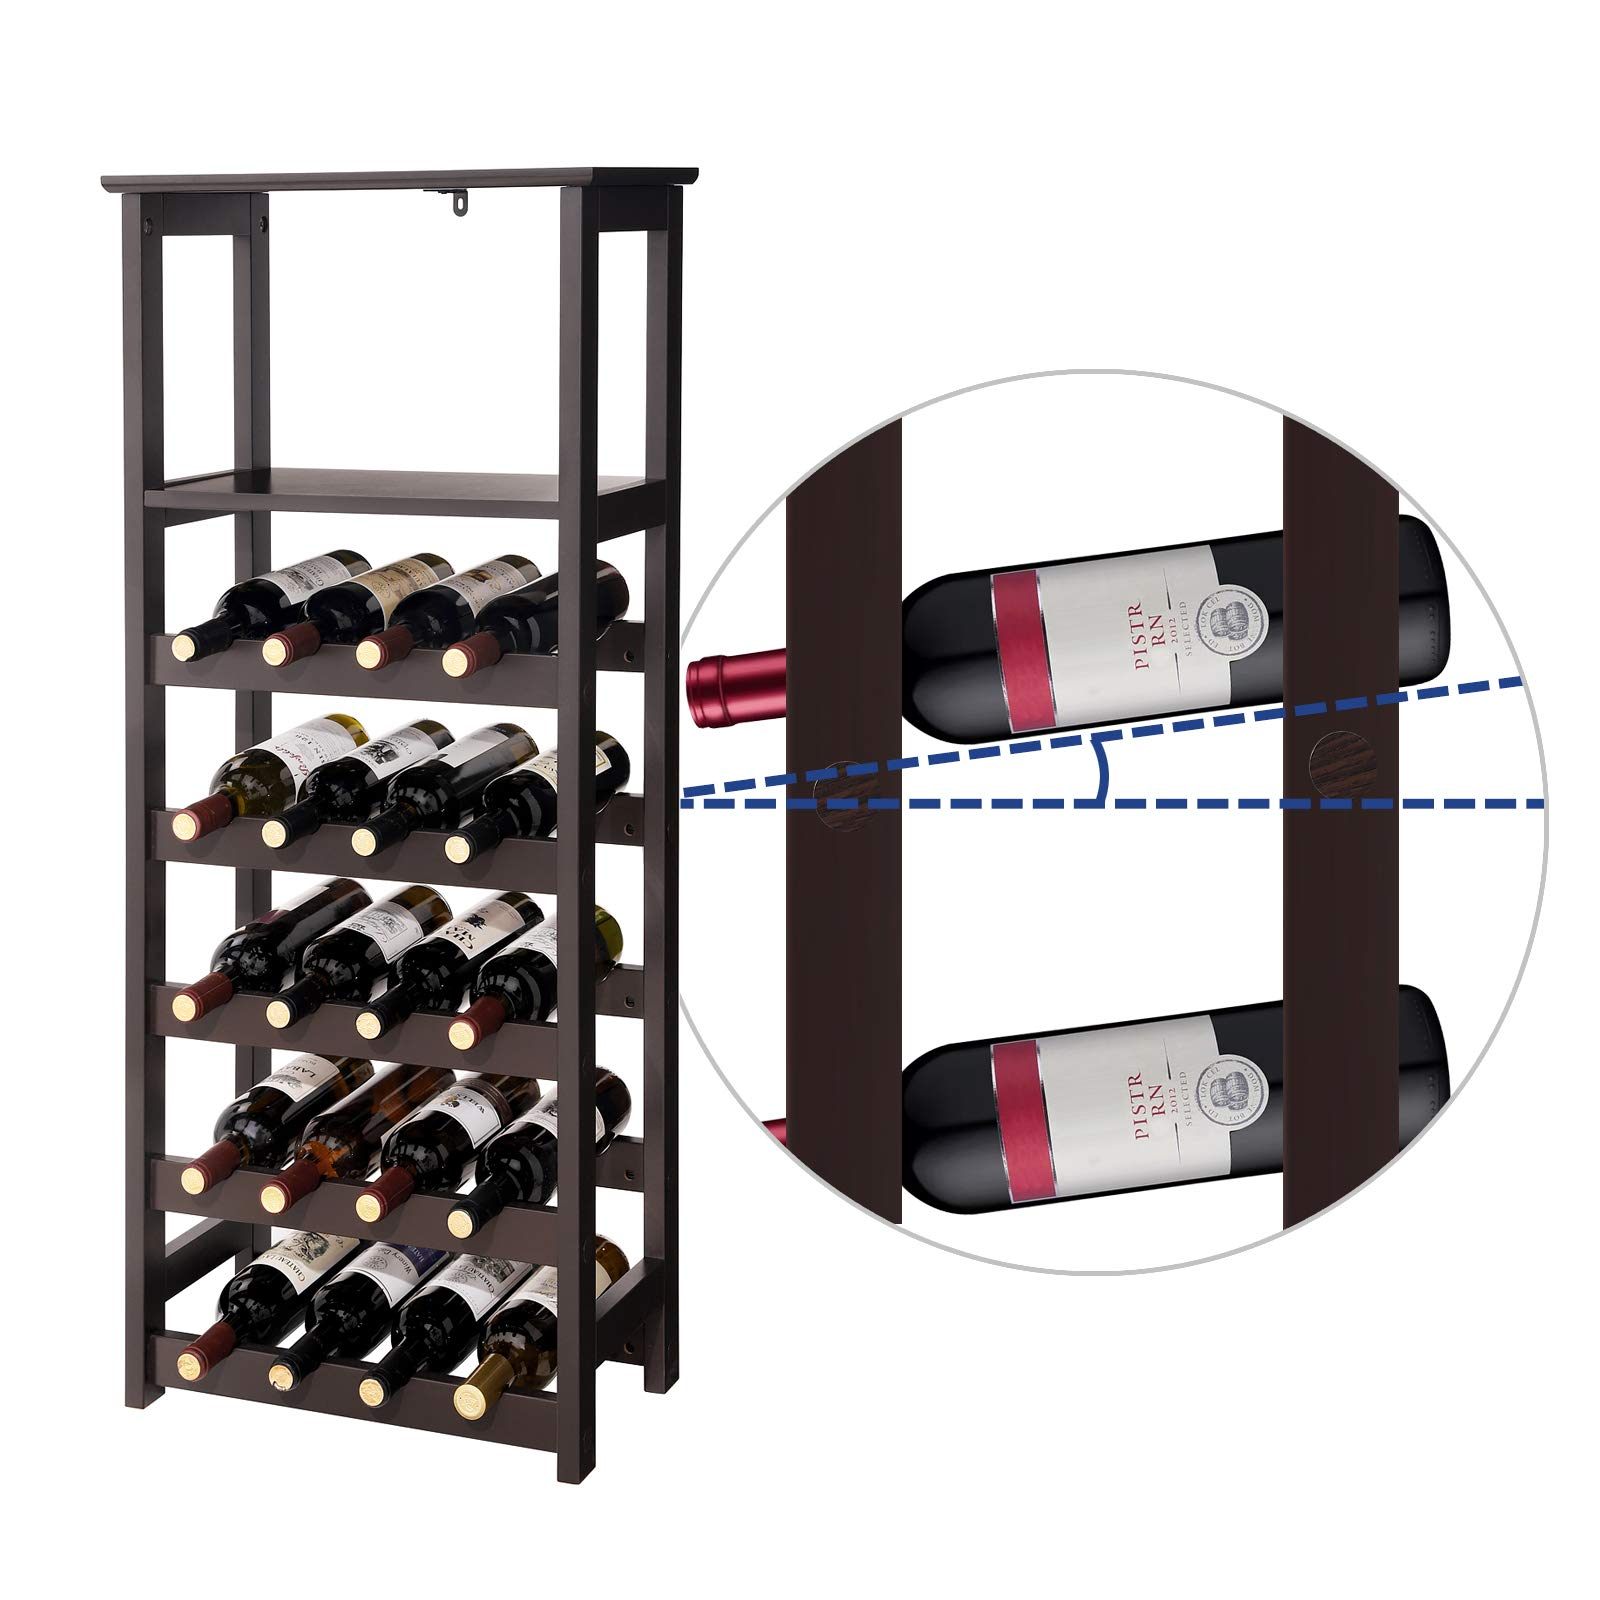 VASAGLE 20 Wooden Wine Rack, Free Standing Bottles Display Storage Shelf, with 2 Slatted Shelves,18.4''L × 10.4''W × 42.9''H, Espresso ULWR03BR by VASAGLE (Image #6)